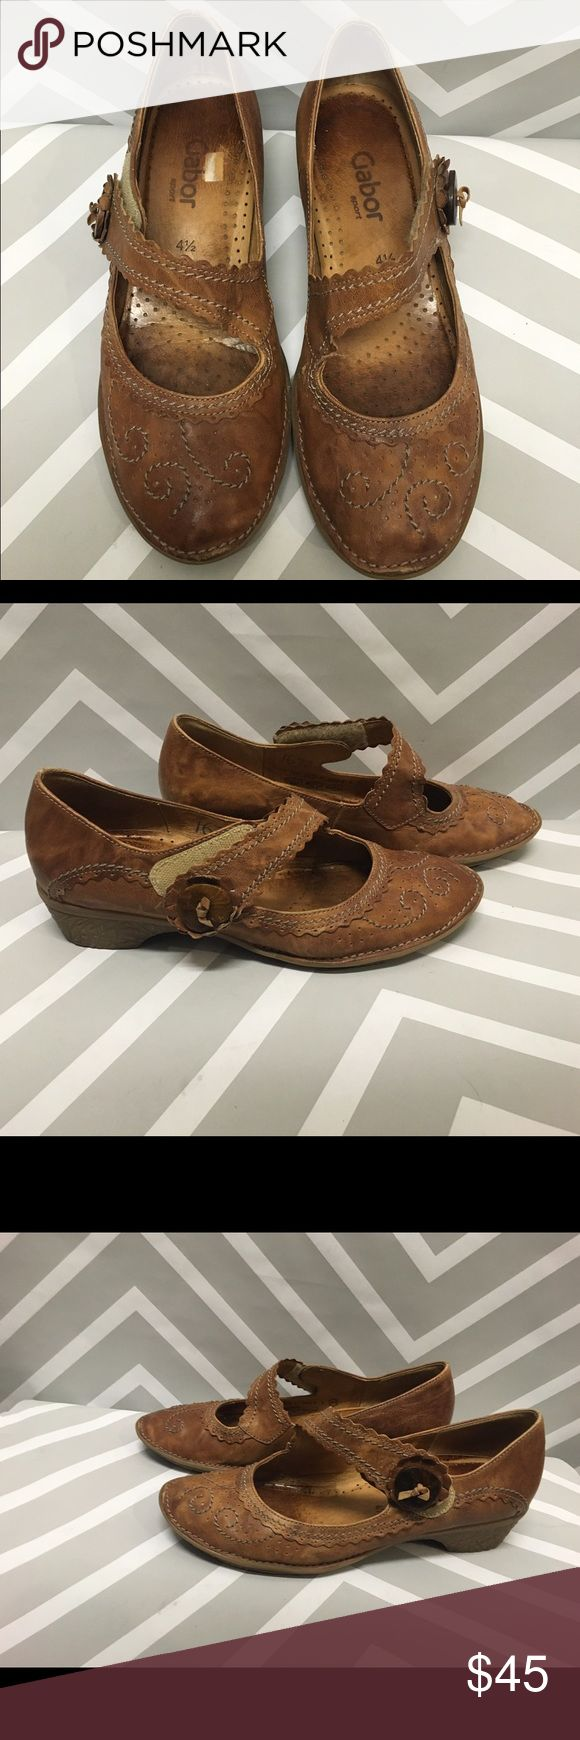 *flash sale* Like-new Gabor Leather Flats Adorable brown Gabor flats in like-new condition. Size 7 Gabor Shoes Flats & Loafers